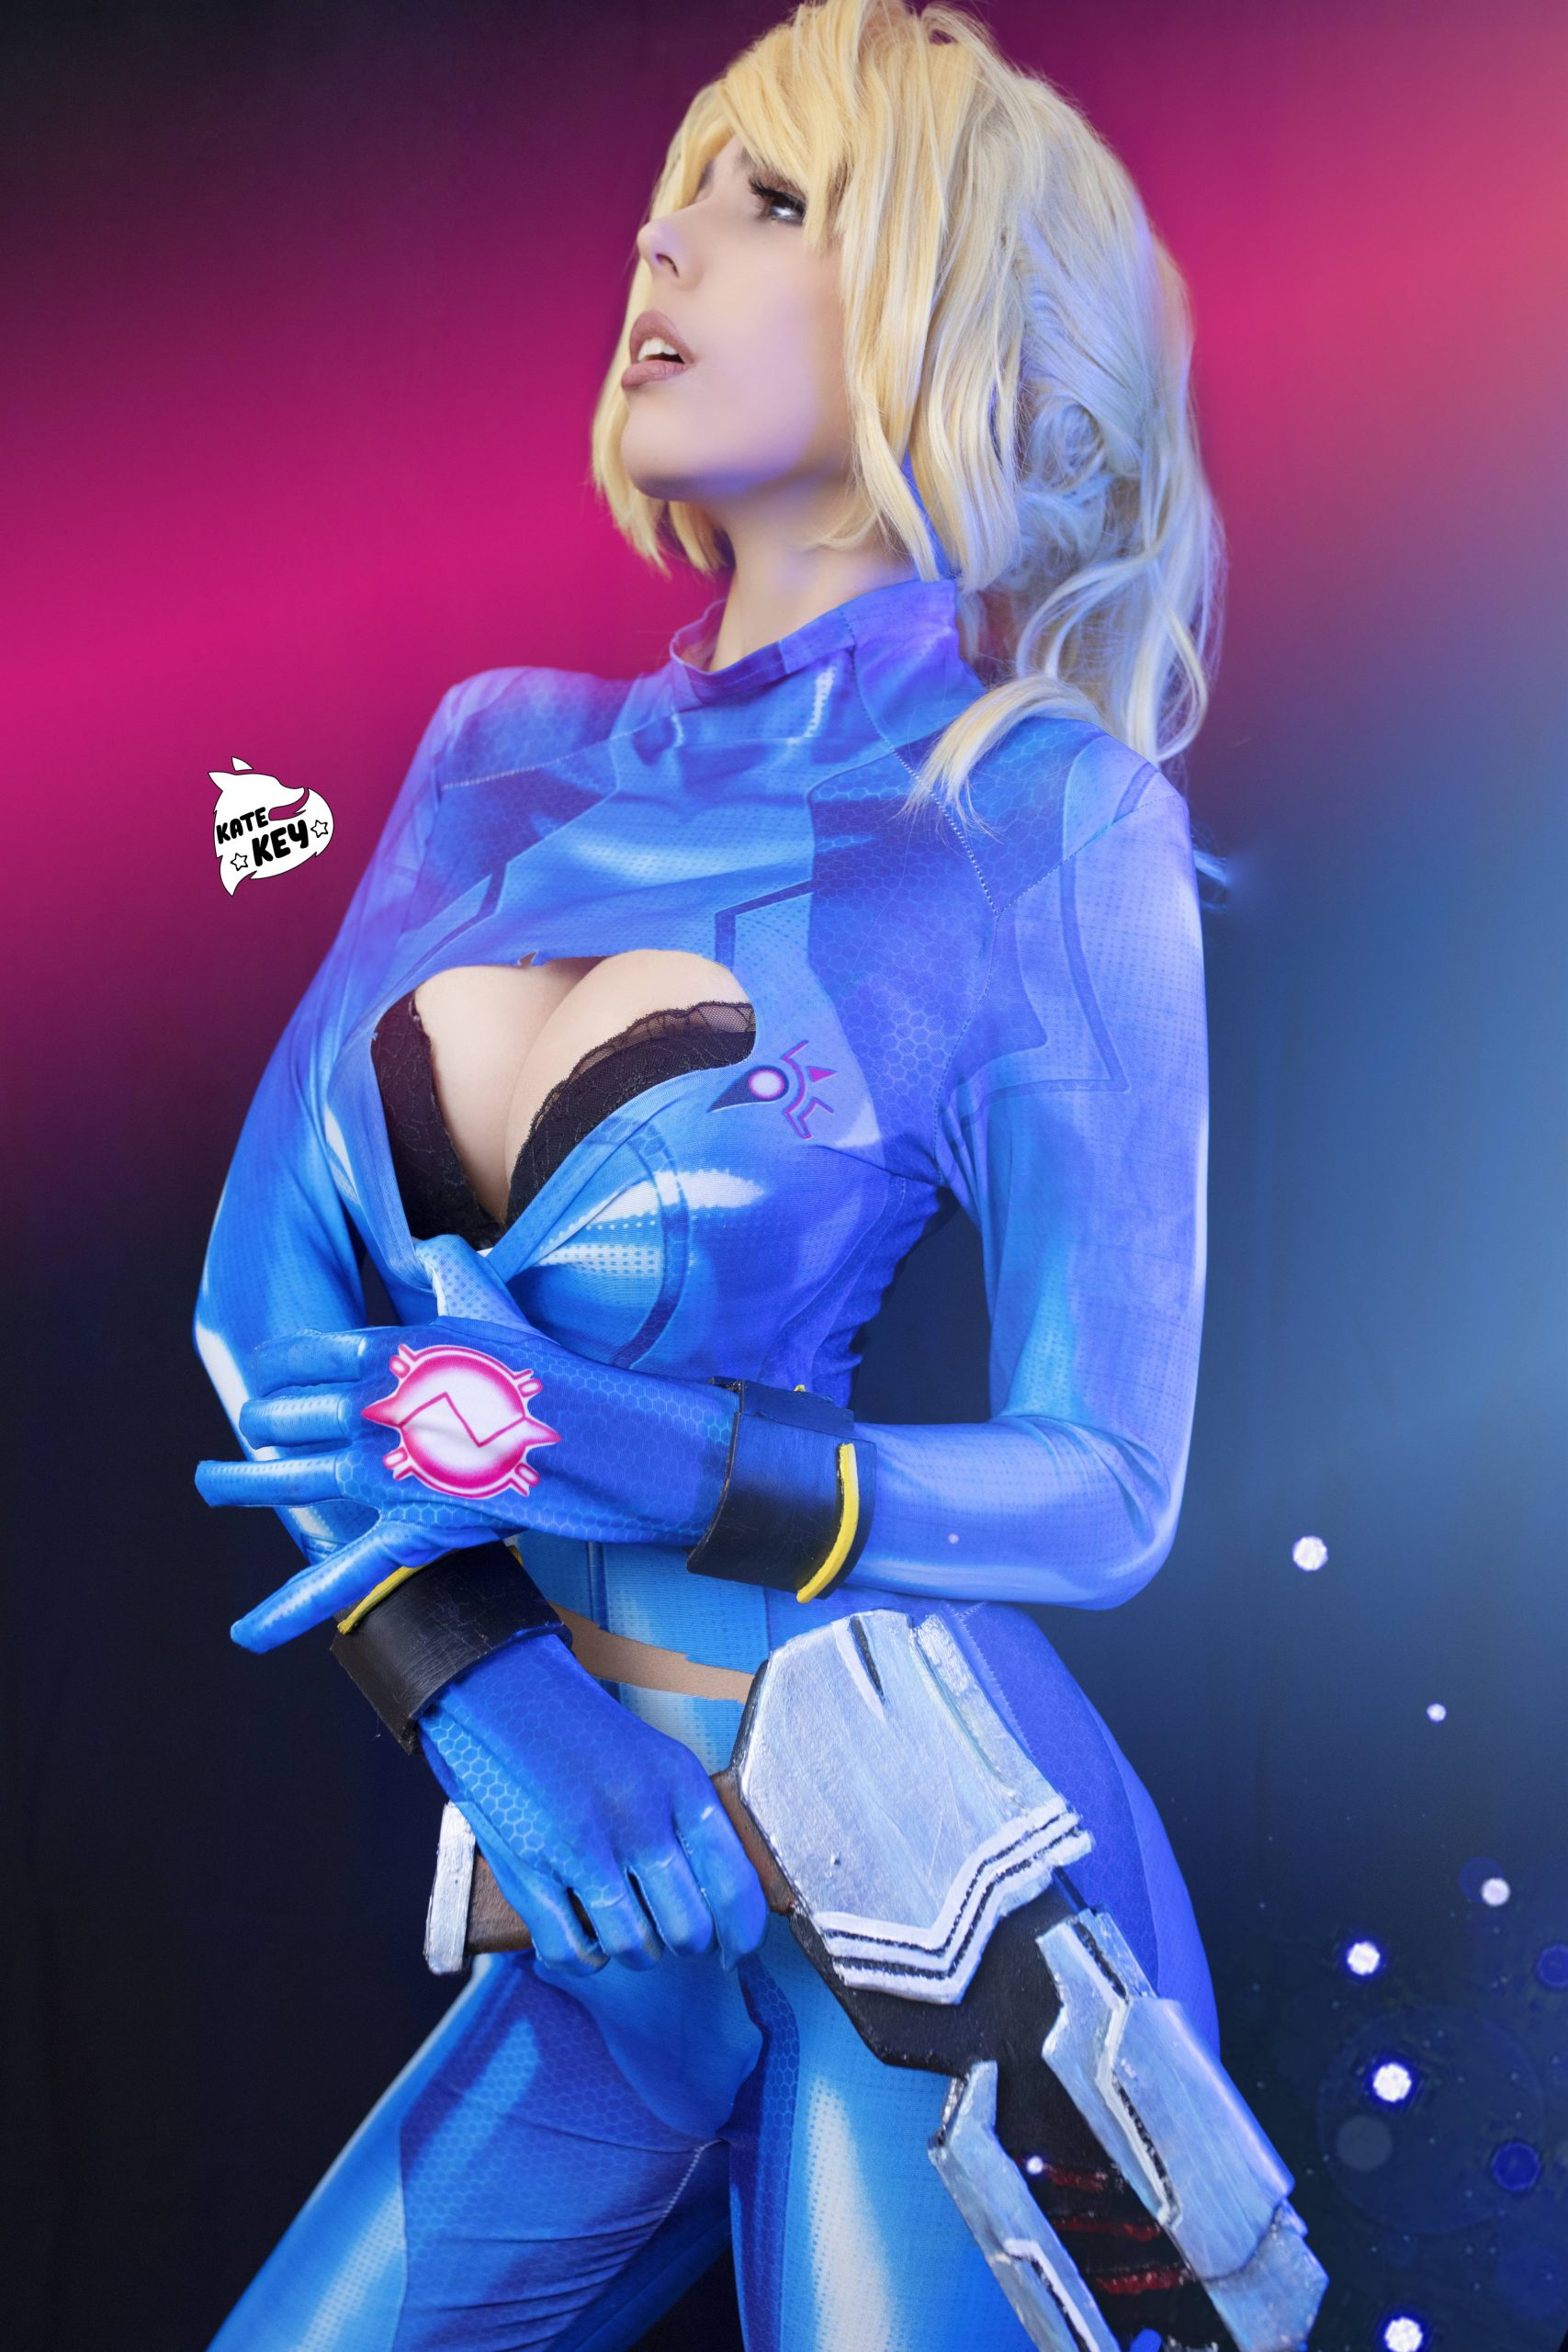 Samus Zero – Cosplay By Kate Key